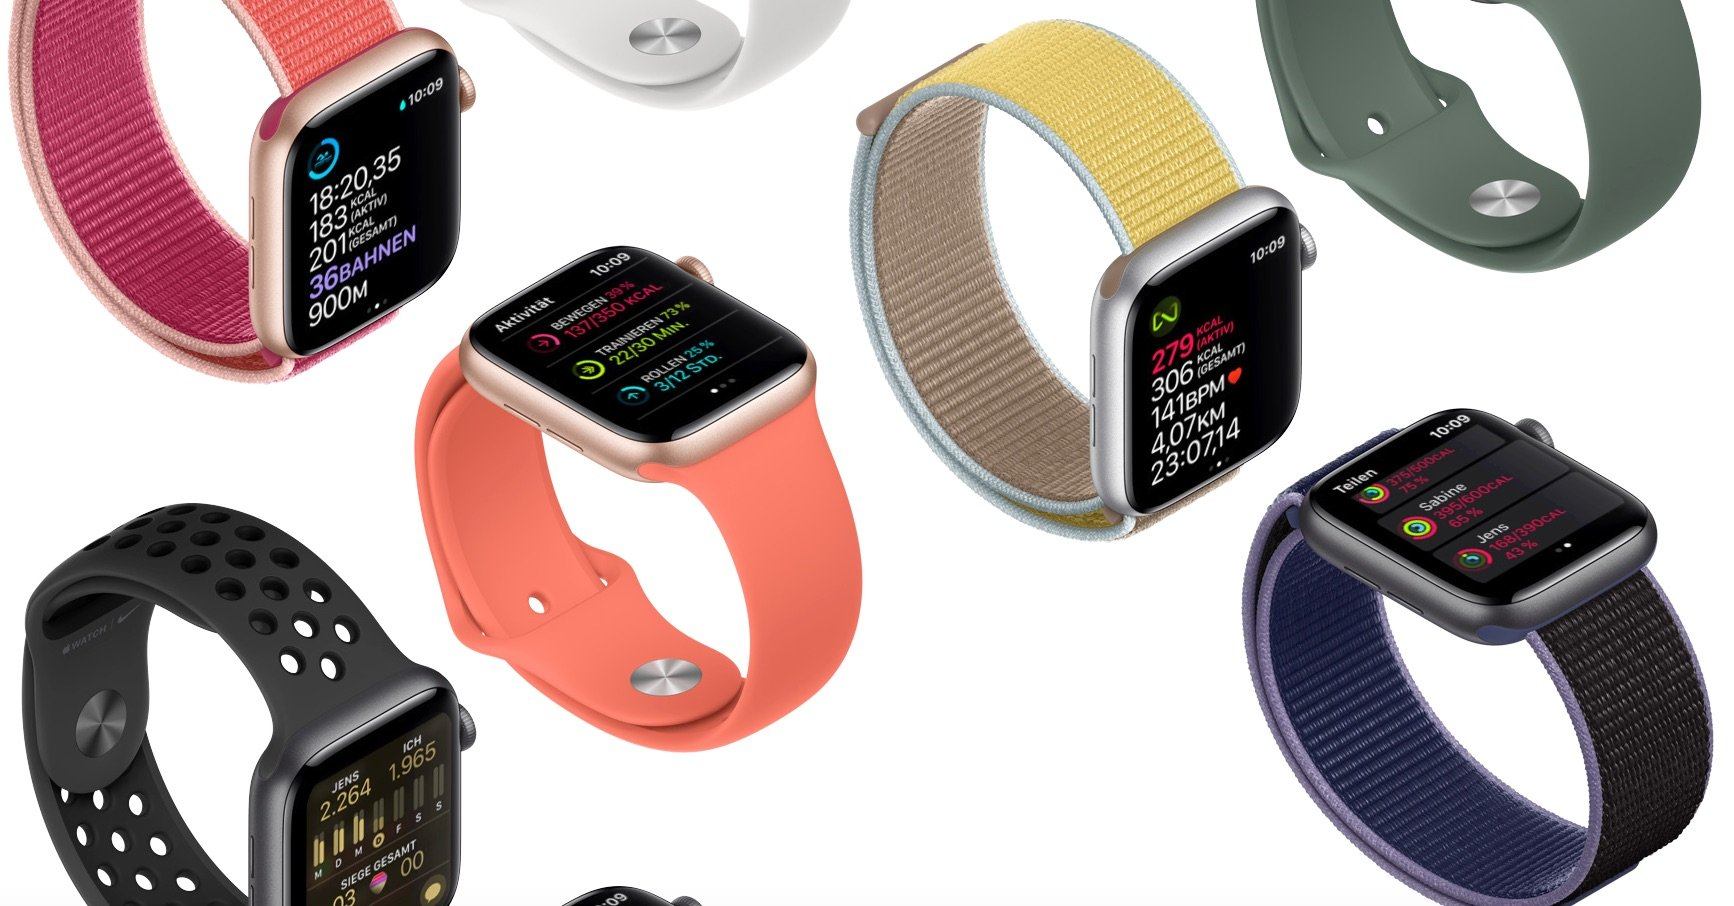 Always On Display genug Grund für Apple Watch Series 5 Update? 1